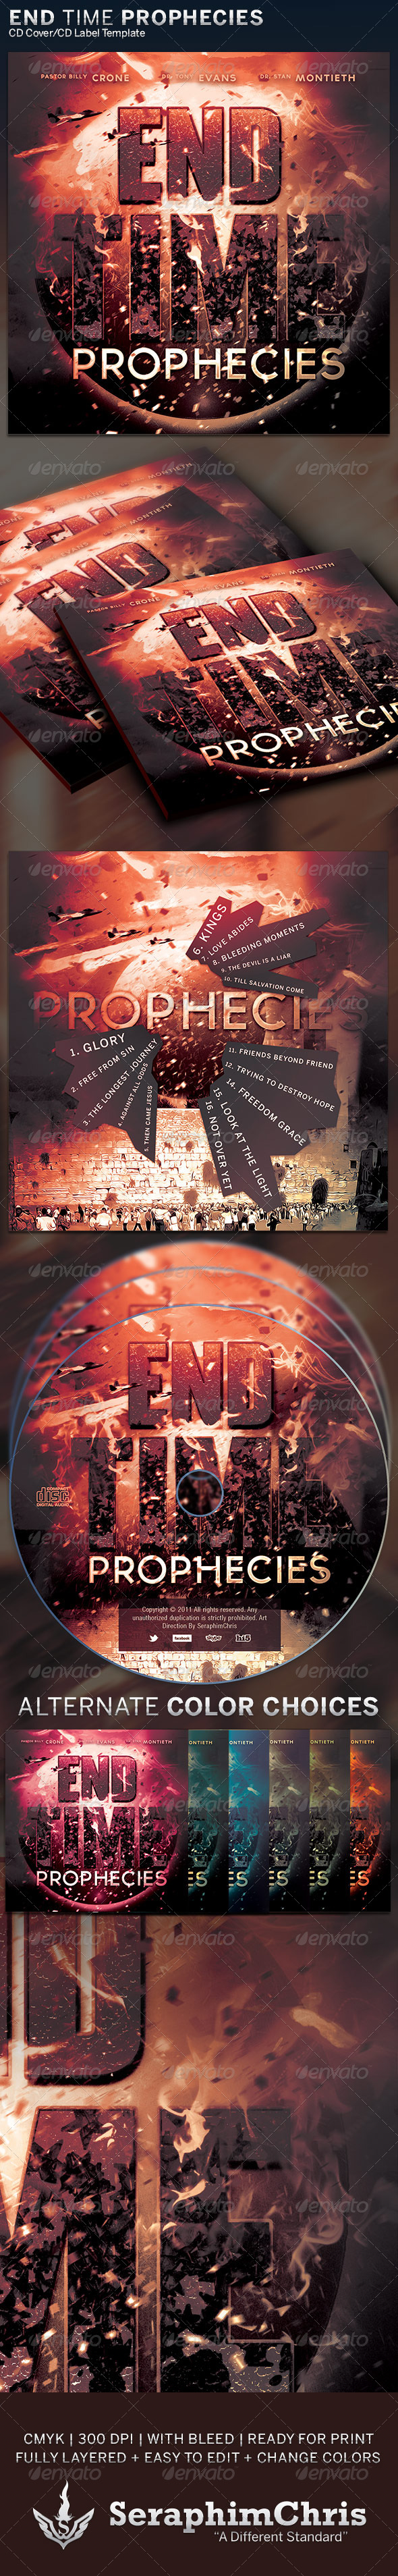 GraphicRiver End Time Prophecies CD Cover Artwork Template 6347432